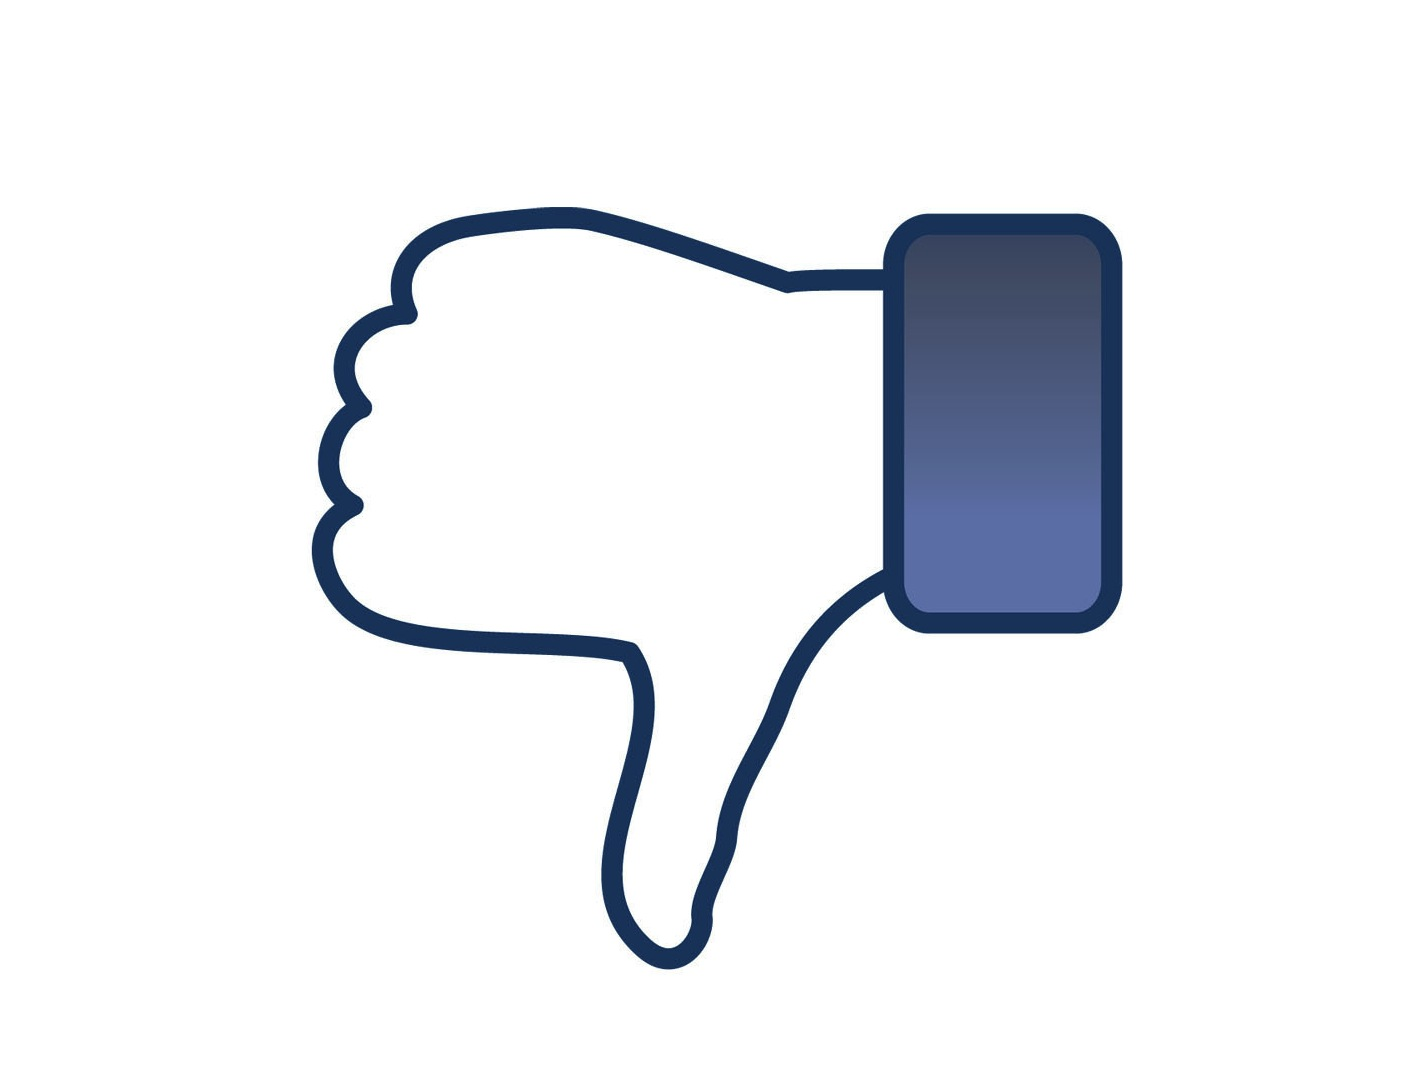 Facebook Dislike Facebook Thumbs Down Paidcontent